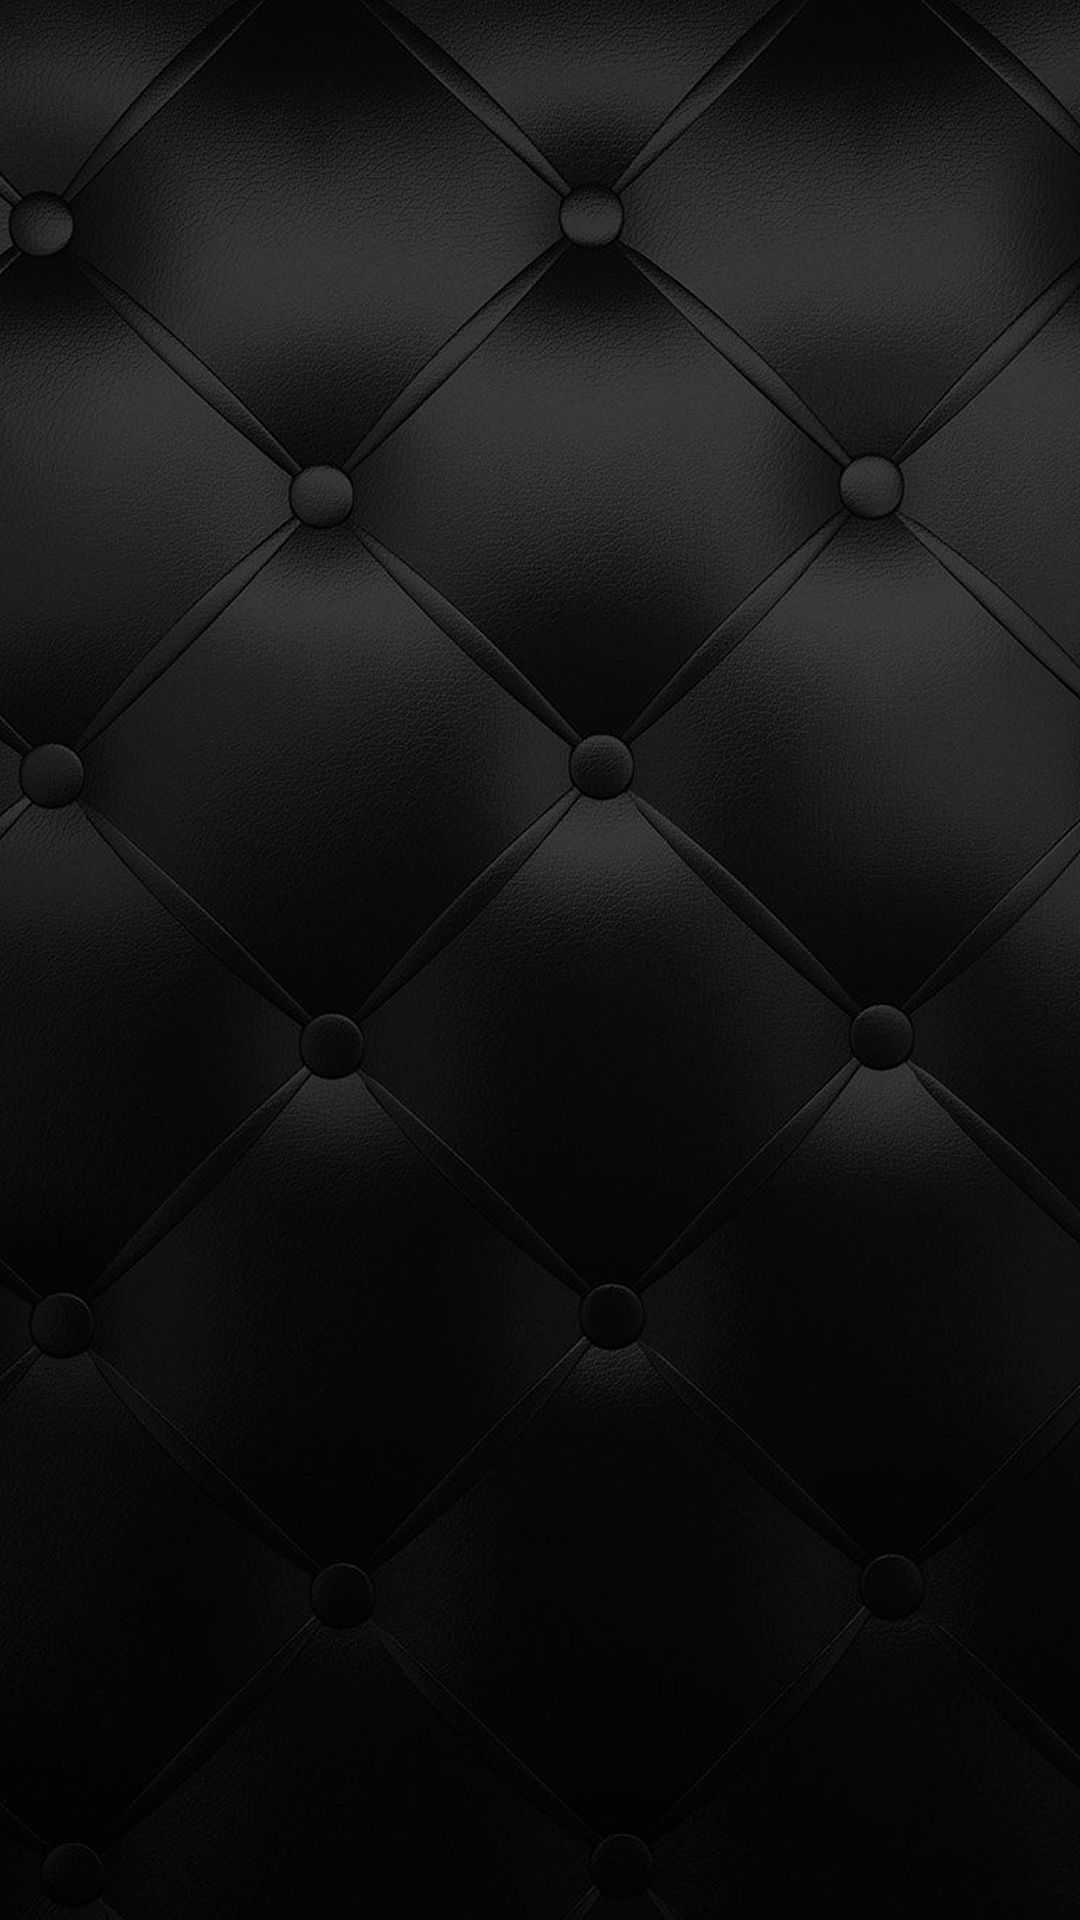 Cool and Awesome iPhone 6 Wallpapers in HD Quality Pixel